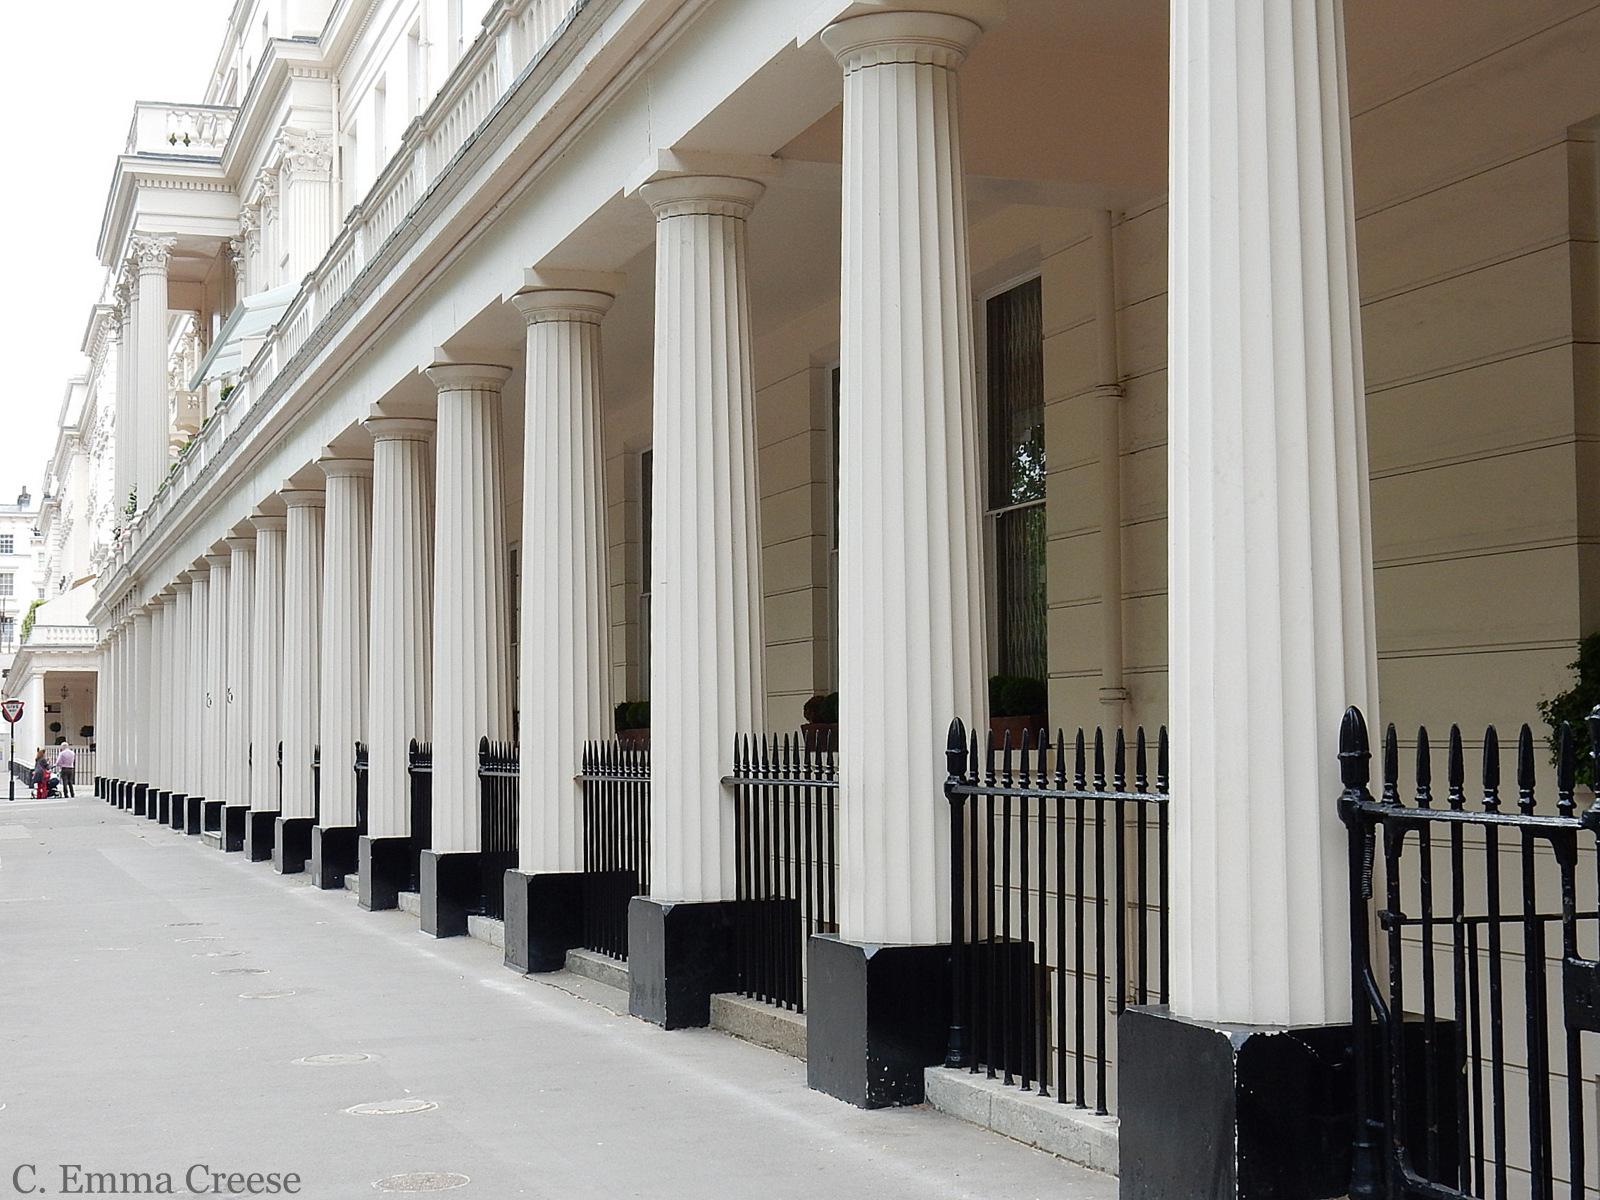 London Belgravia and why I love it